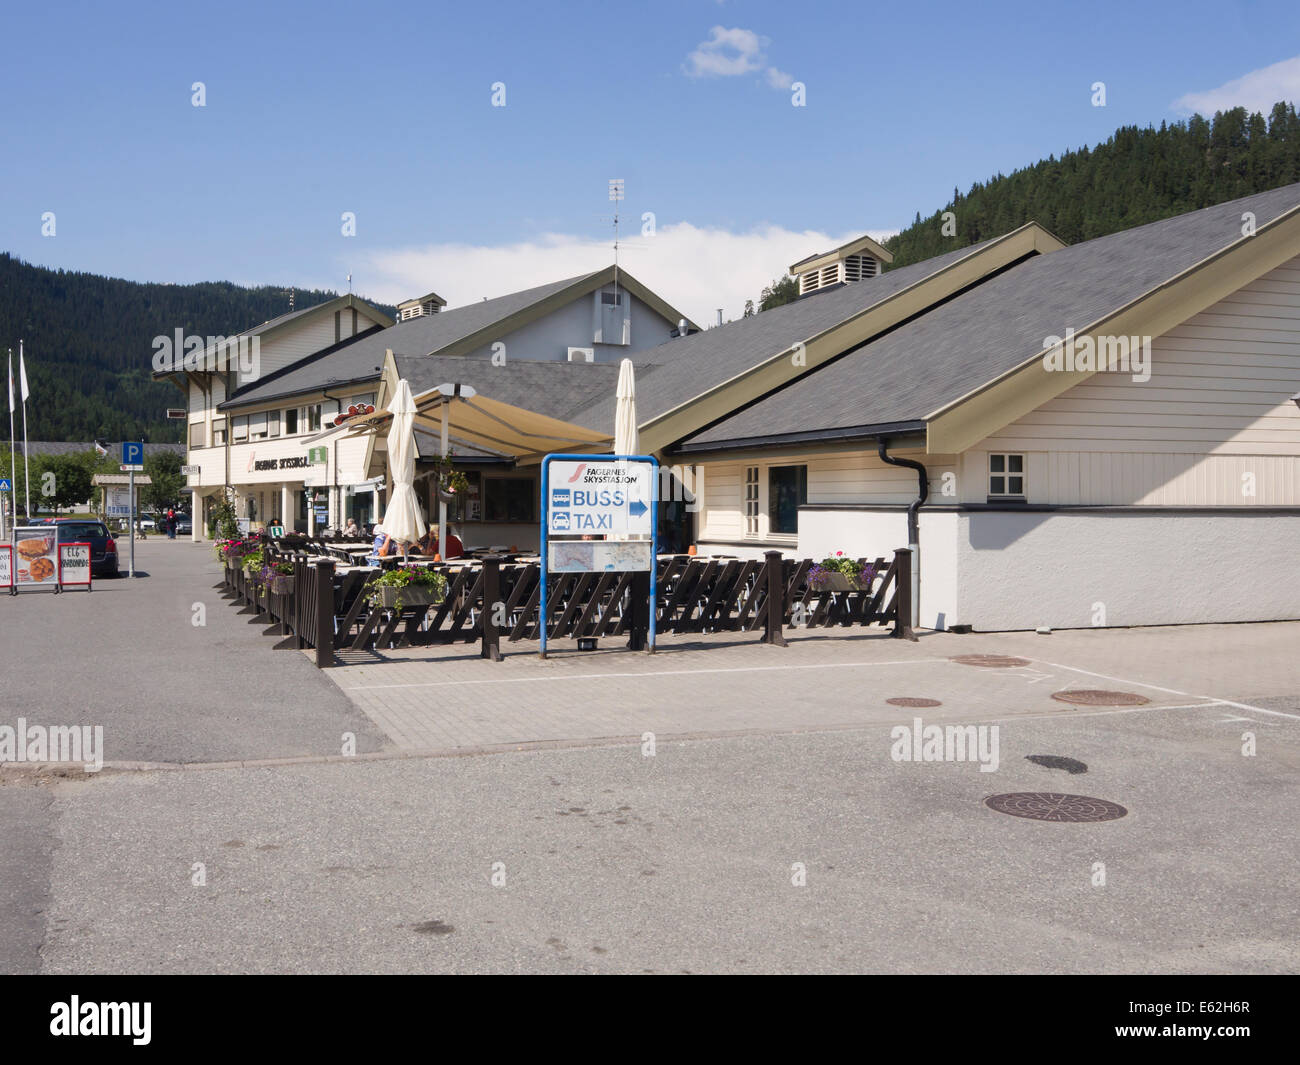 Fagernes skysstasjon, a public transport hub in Fagernes Norway, a village with easy access to the mountains of - Stock Image